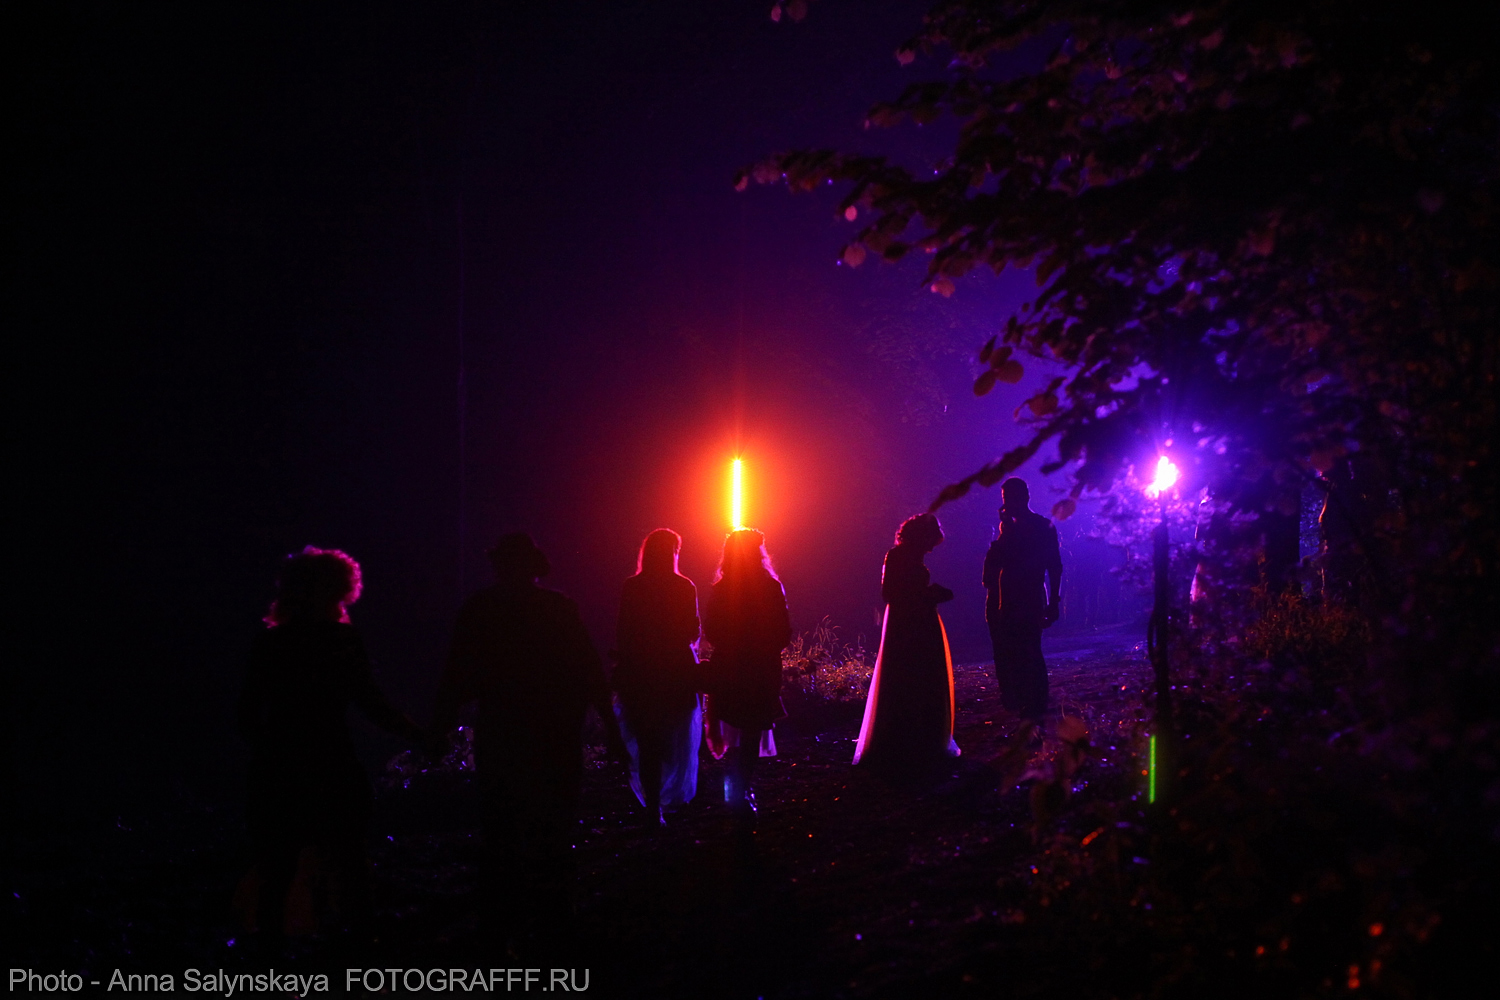 IMG_5563_AnnaSalynskaya_1 - Midsummer Night's Dream 2017